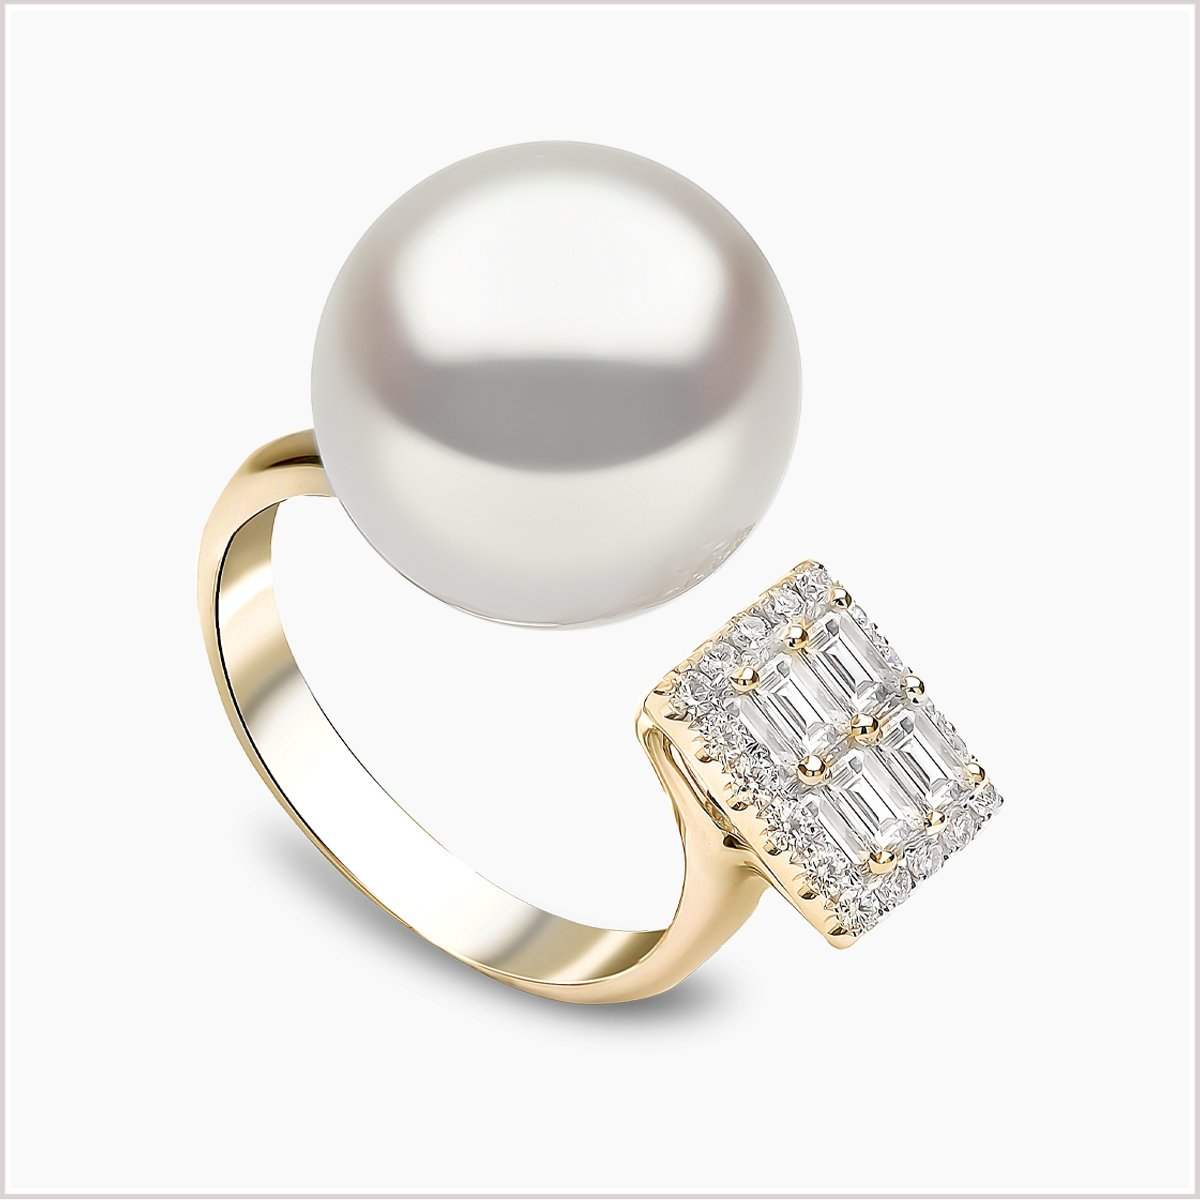 Yoko London Starlight South Sea Pearl and Diamond Ring